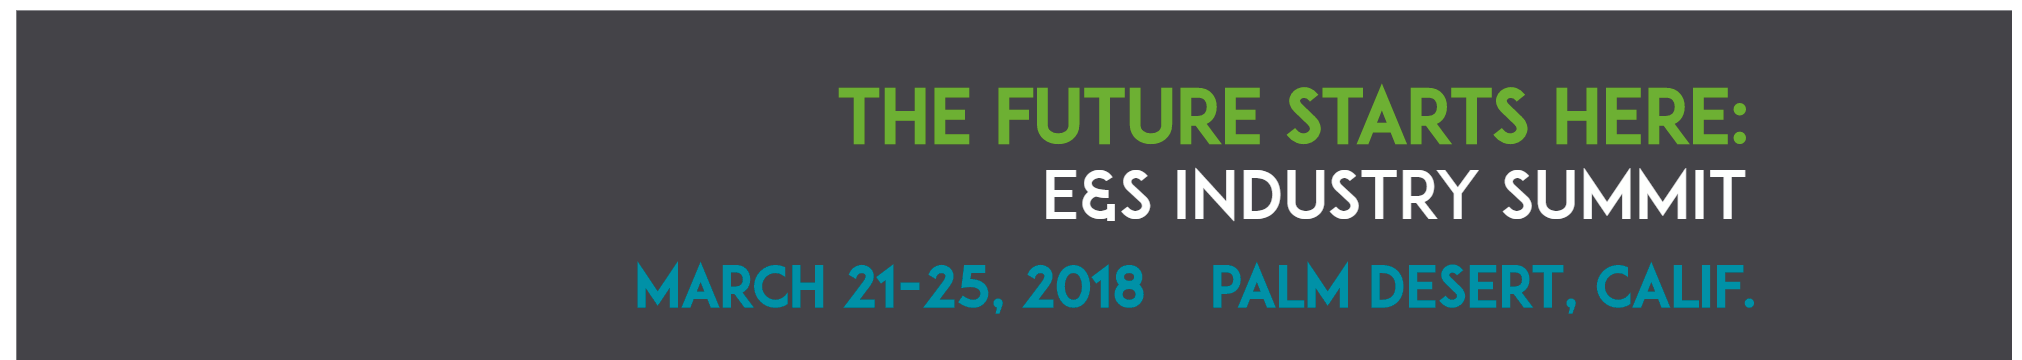 2018 E&S Industry Summit